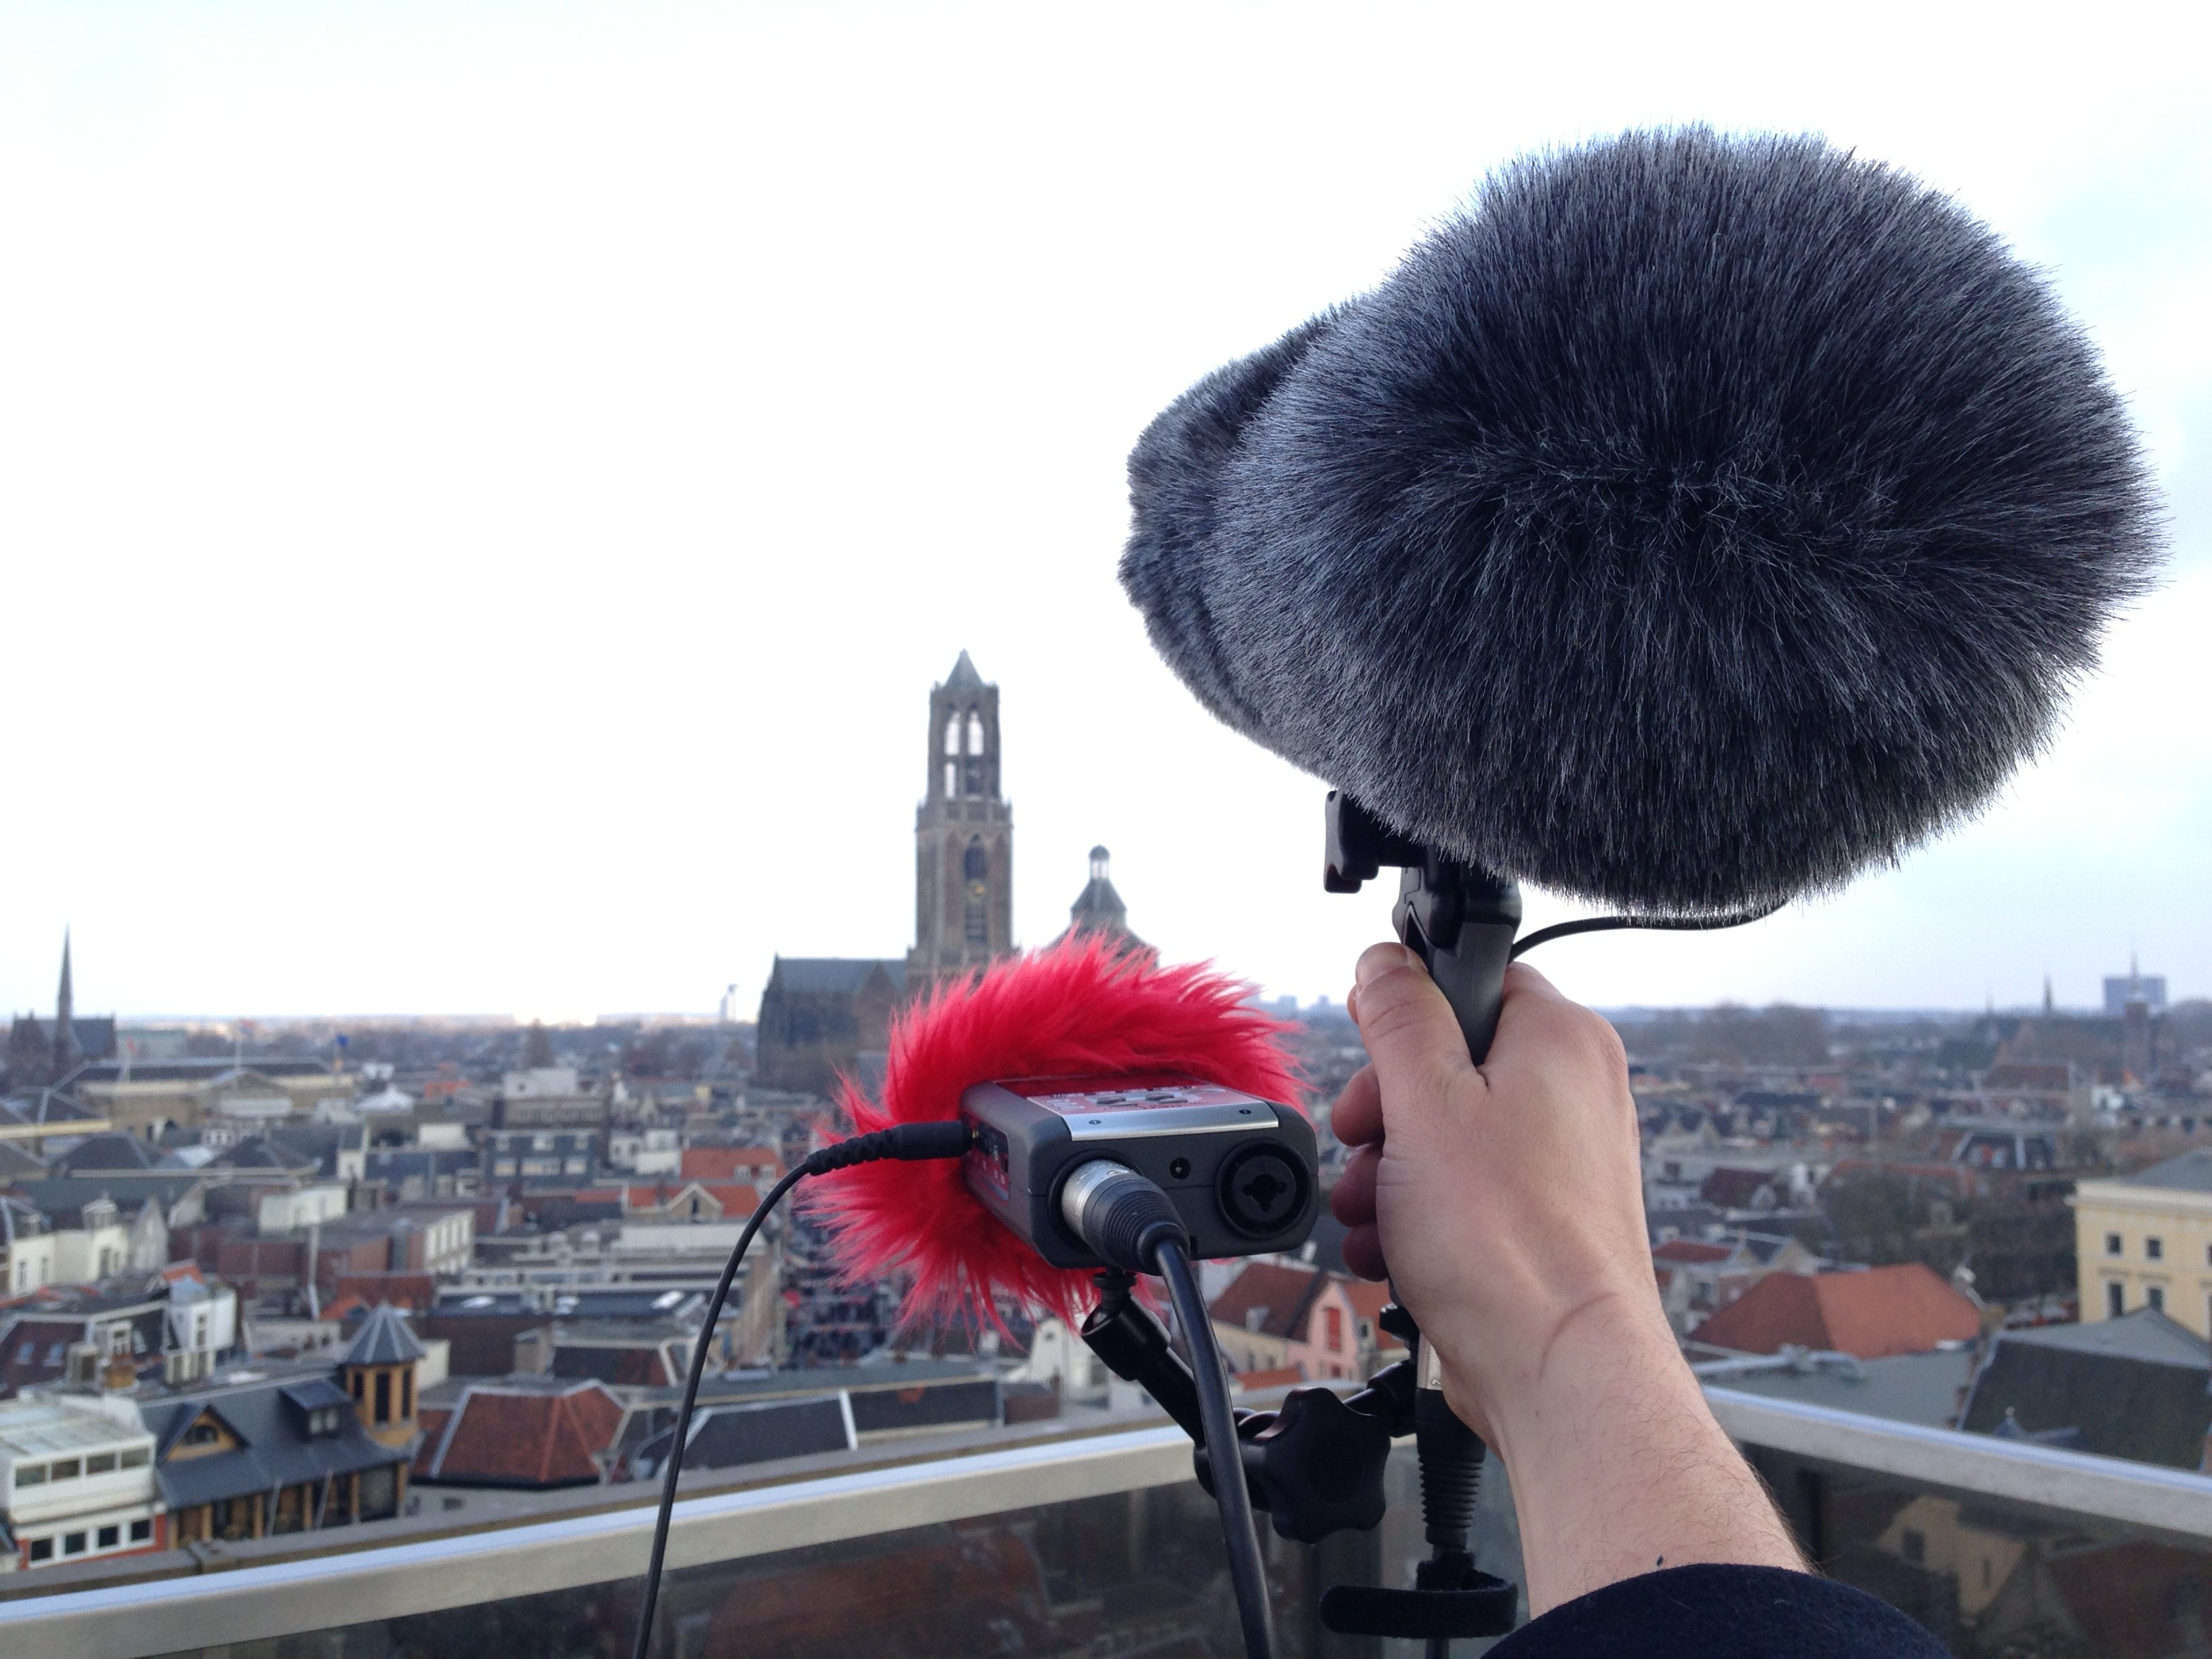 Hand holding a microphone on a rooftop with a city scape in the background.